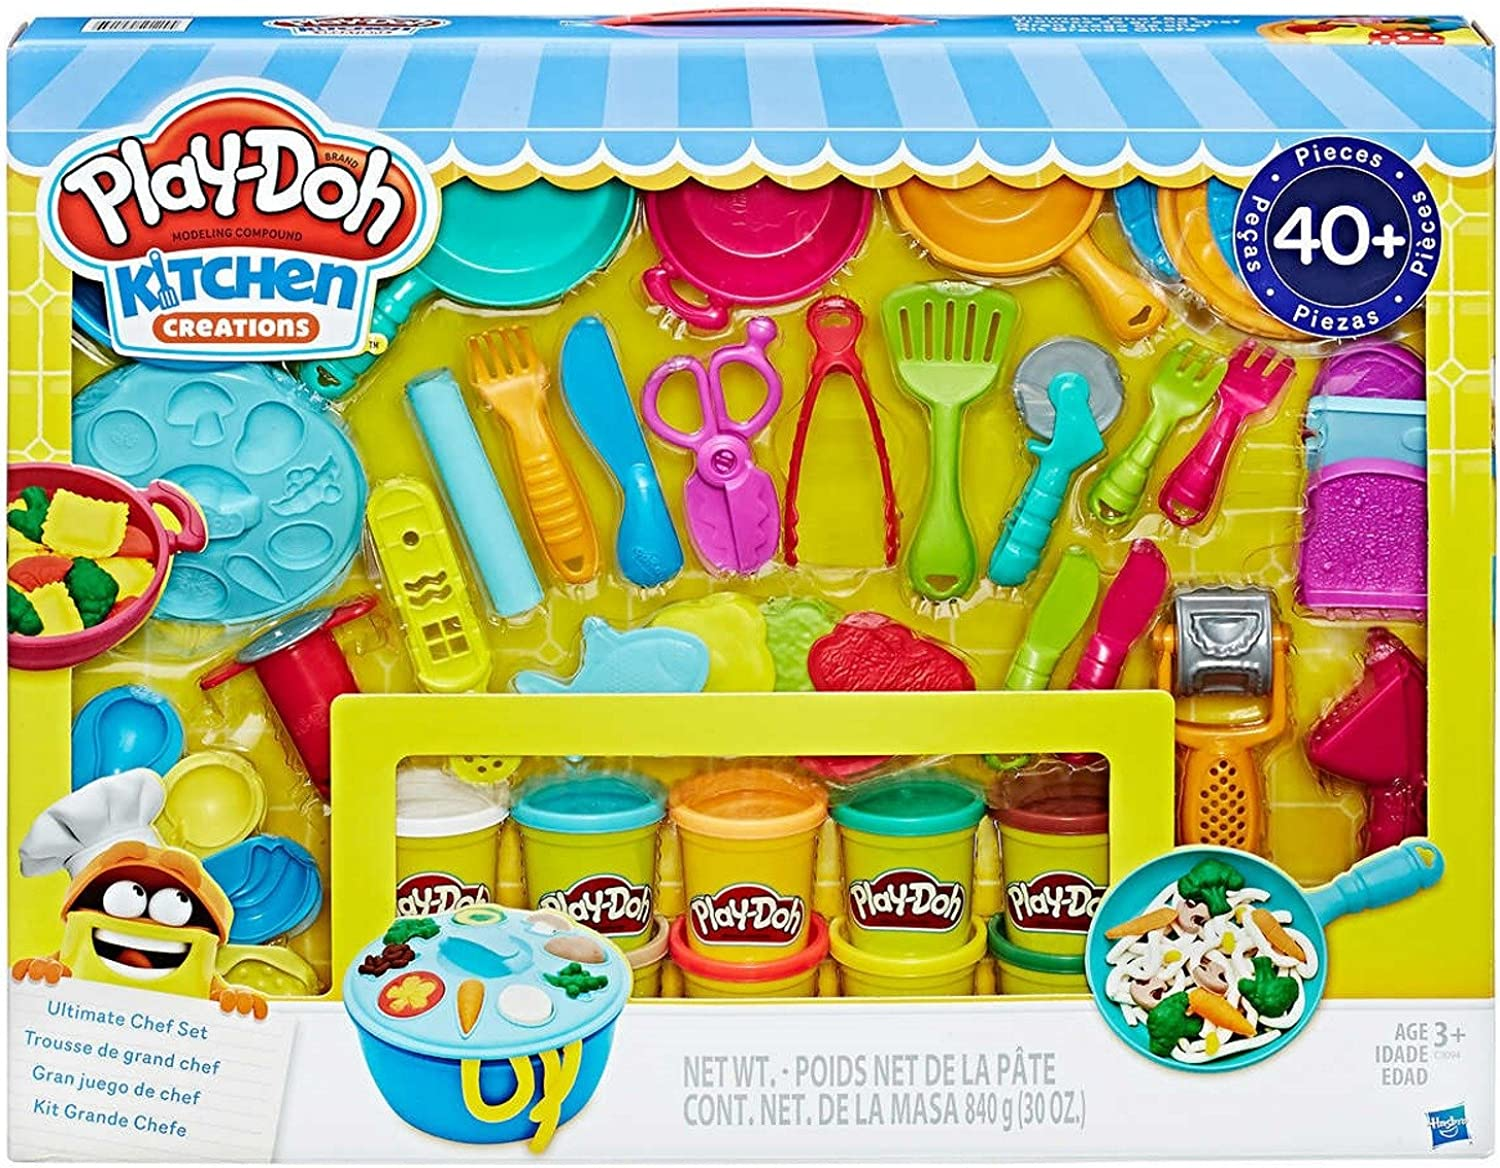 PlayDoh Kitchen Creations Ultimate Chef Set  Create and Make Meals with PlayDoh Kitchen Tools  40+ Pieces & 10 Cans of PlayDoh